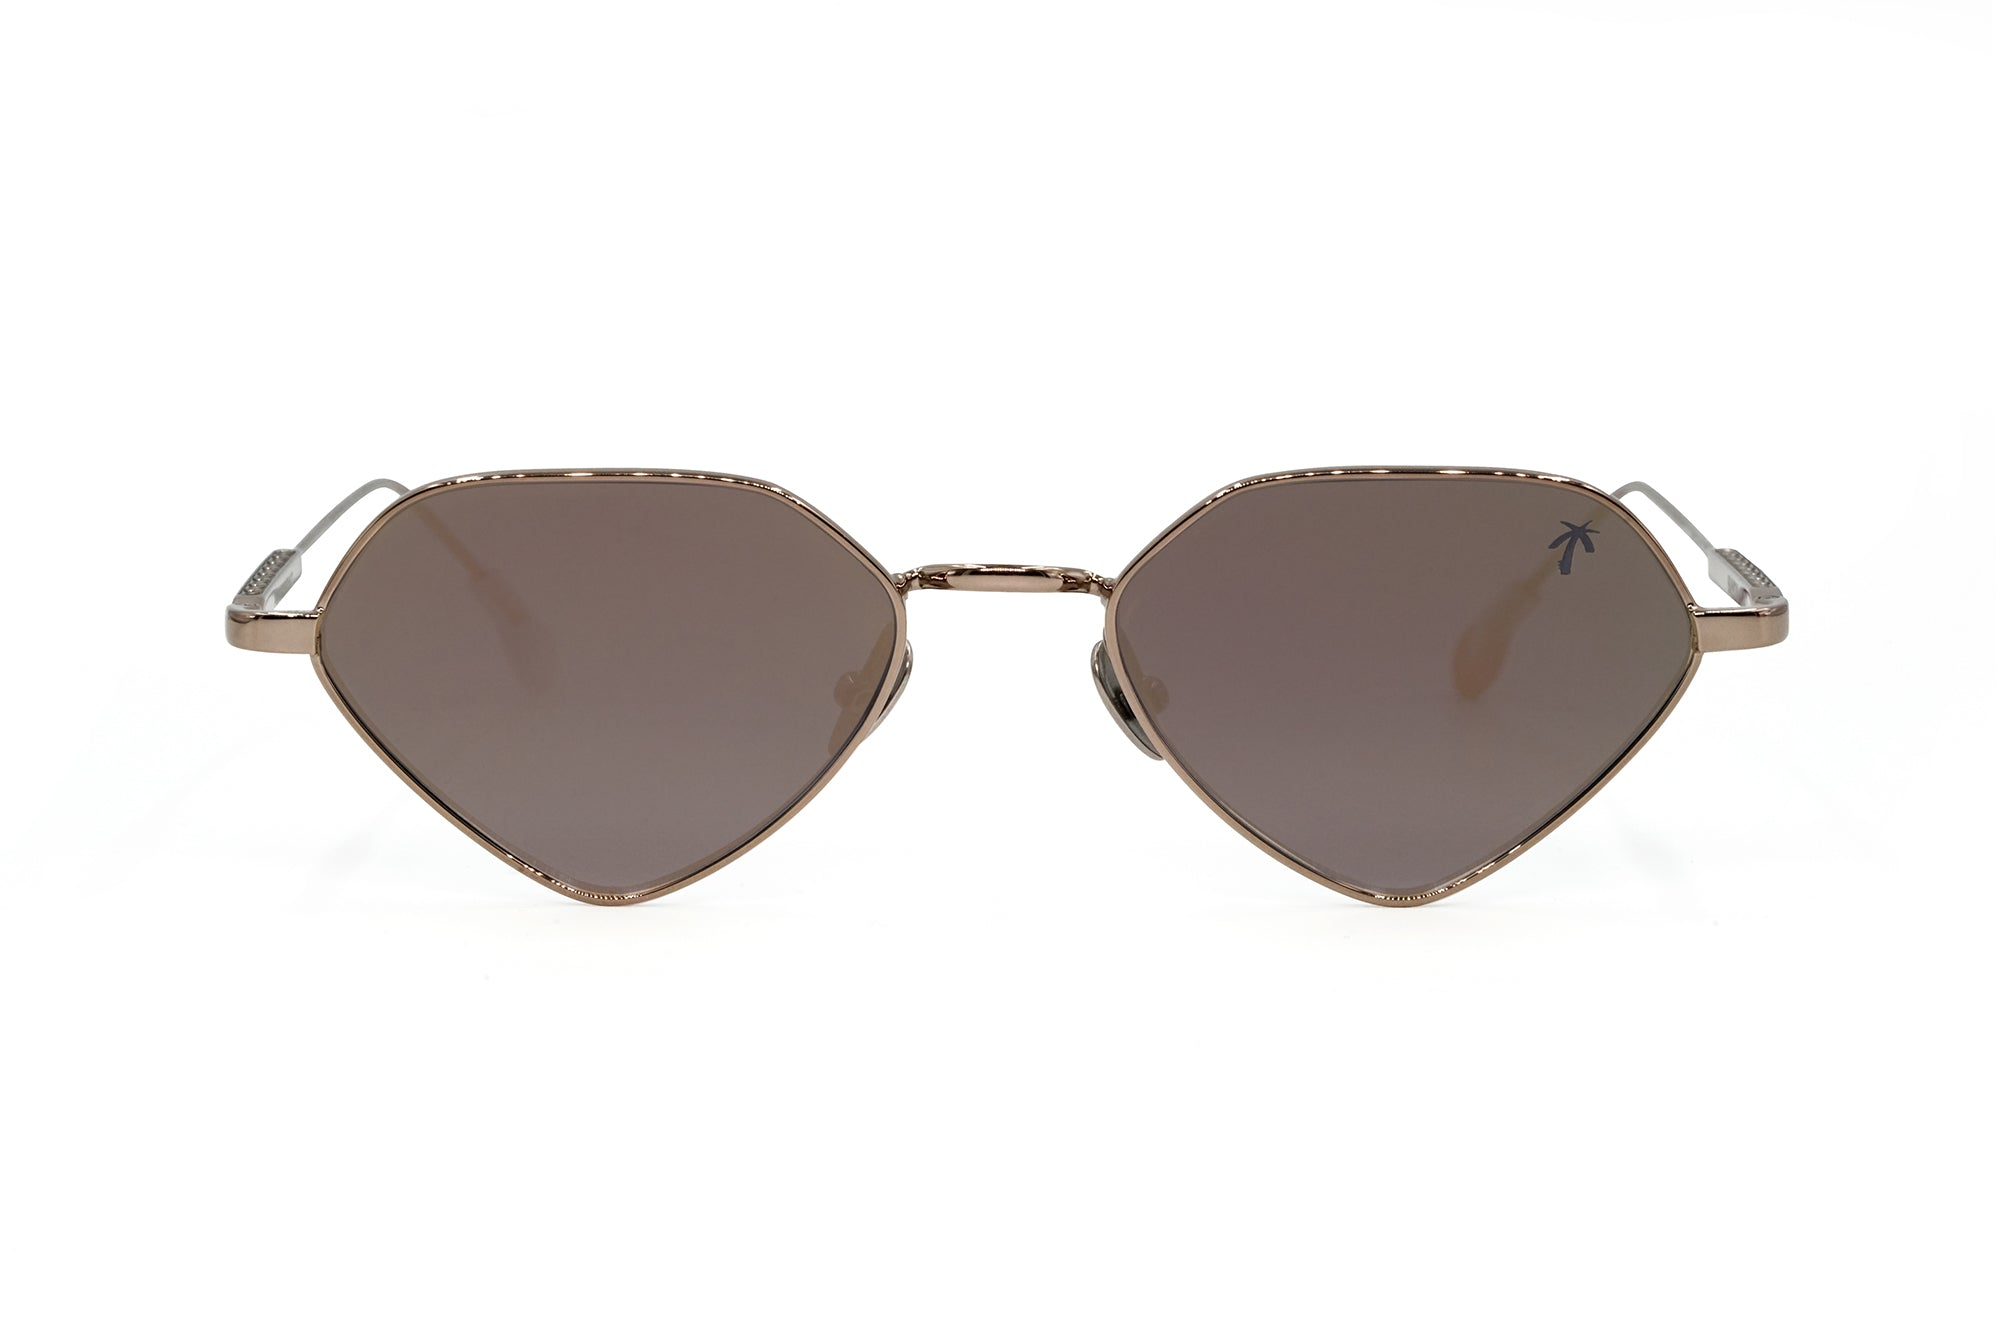 Bundy in rose gold - Peppertint - Designer sunglasses